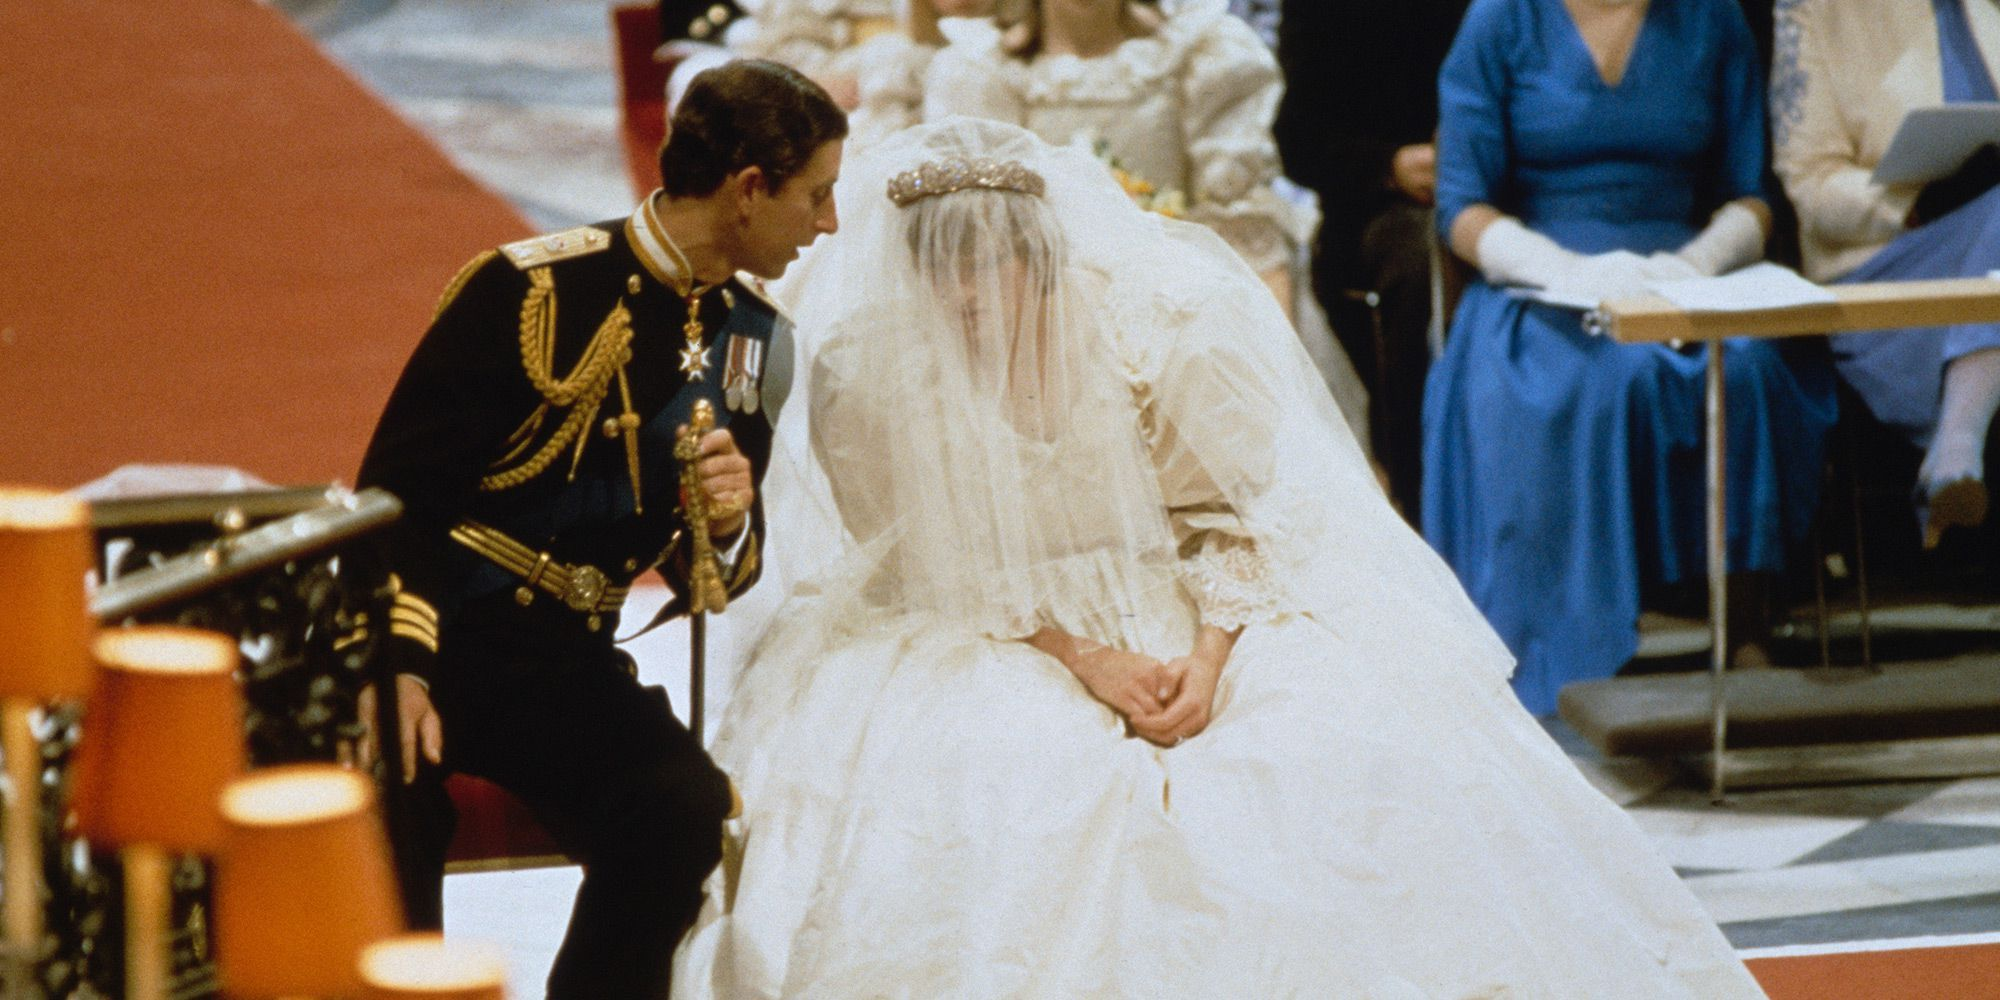 Prince Charles and Princess Diana during their wedding ceremony